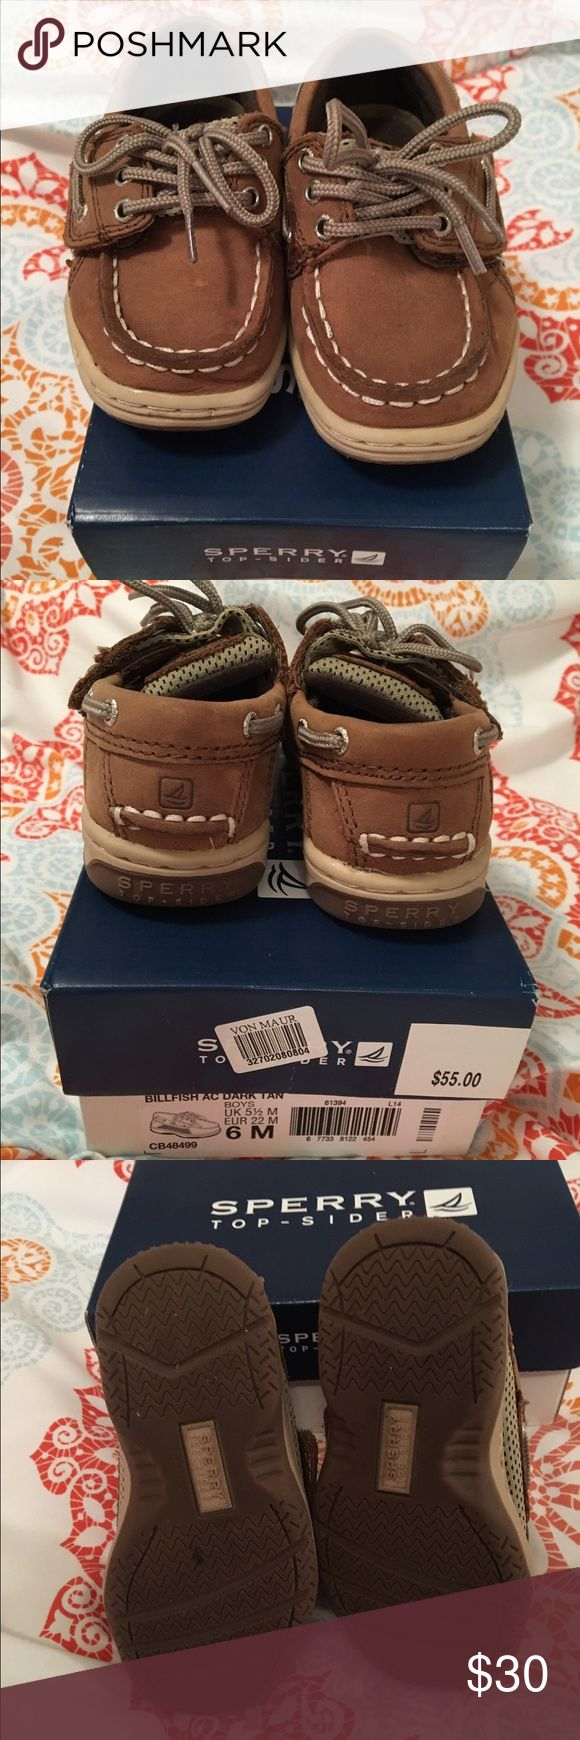 Toddler Sperry Top-Siders Toddler boy Sperry Top-Siders. Size 6. Great condition as they were only worn a few times. Sperry Top-Sider Shoes